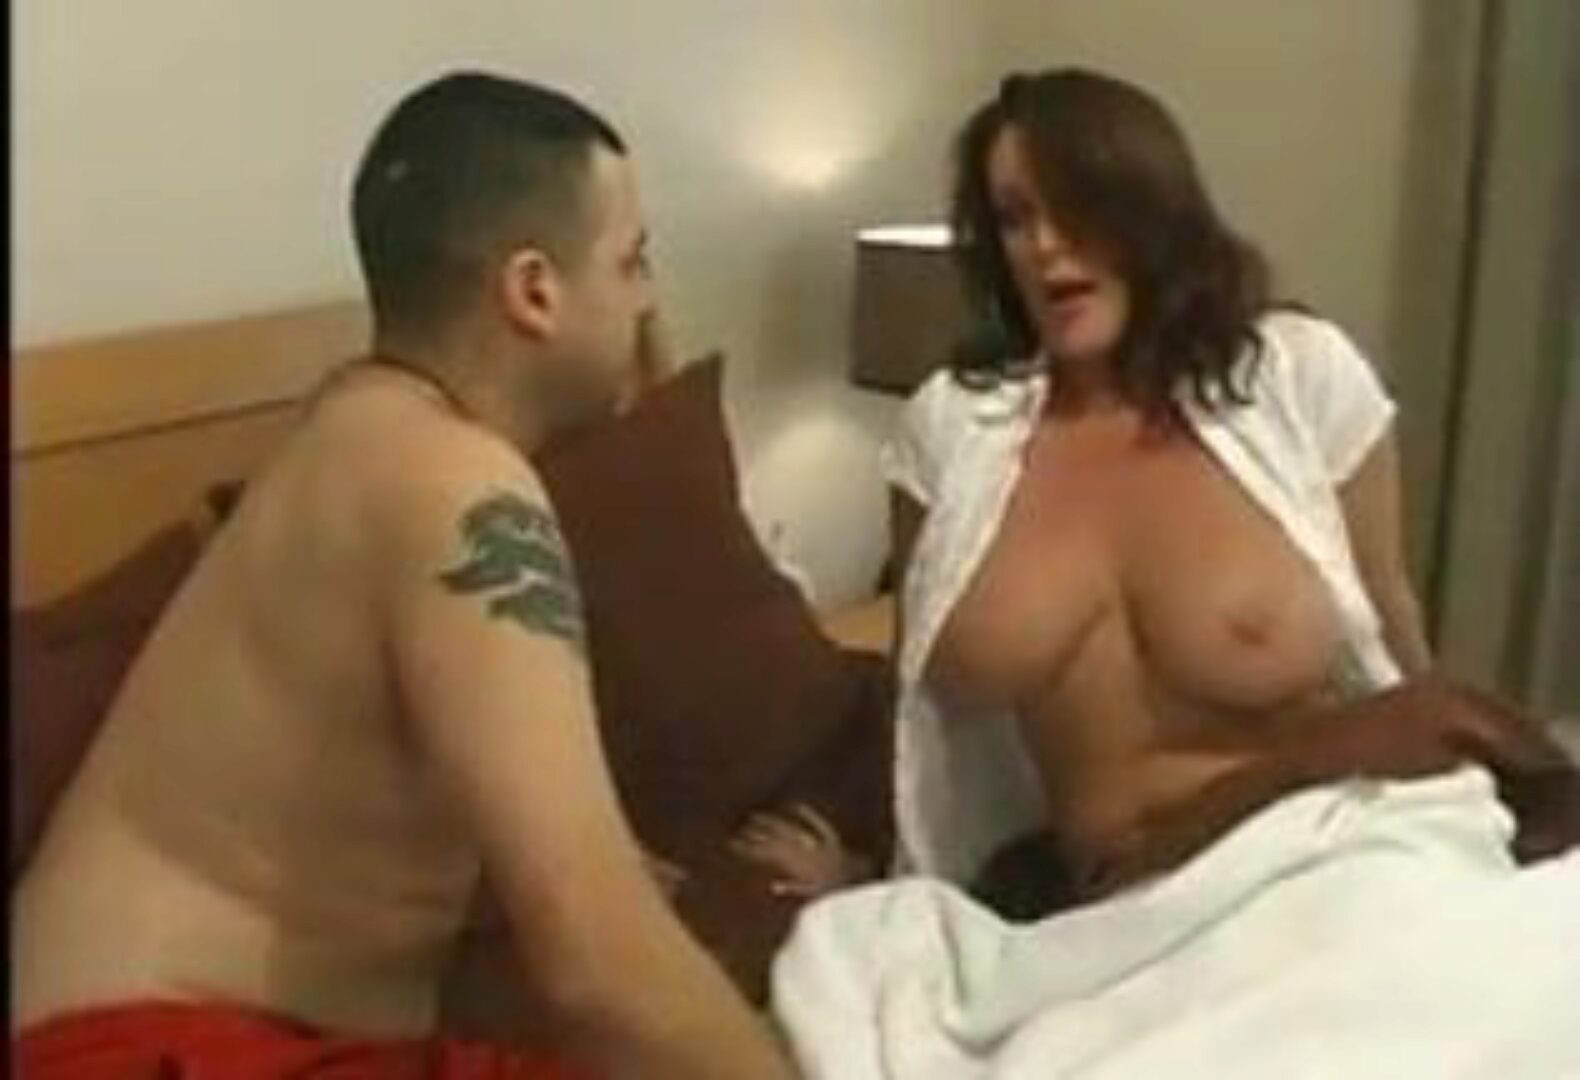 Mom Says Don't Cum Inside Me but Son Forces &... Watch Mom Says Don't Cum Inside Me but Son Forces & Creampies Mom Part 2 clip on xHamster - the ultimate collection of free Free Creampie Tube & Beeg Mom pornography tube episodes